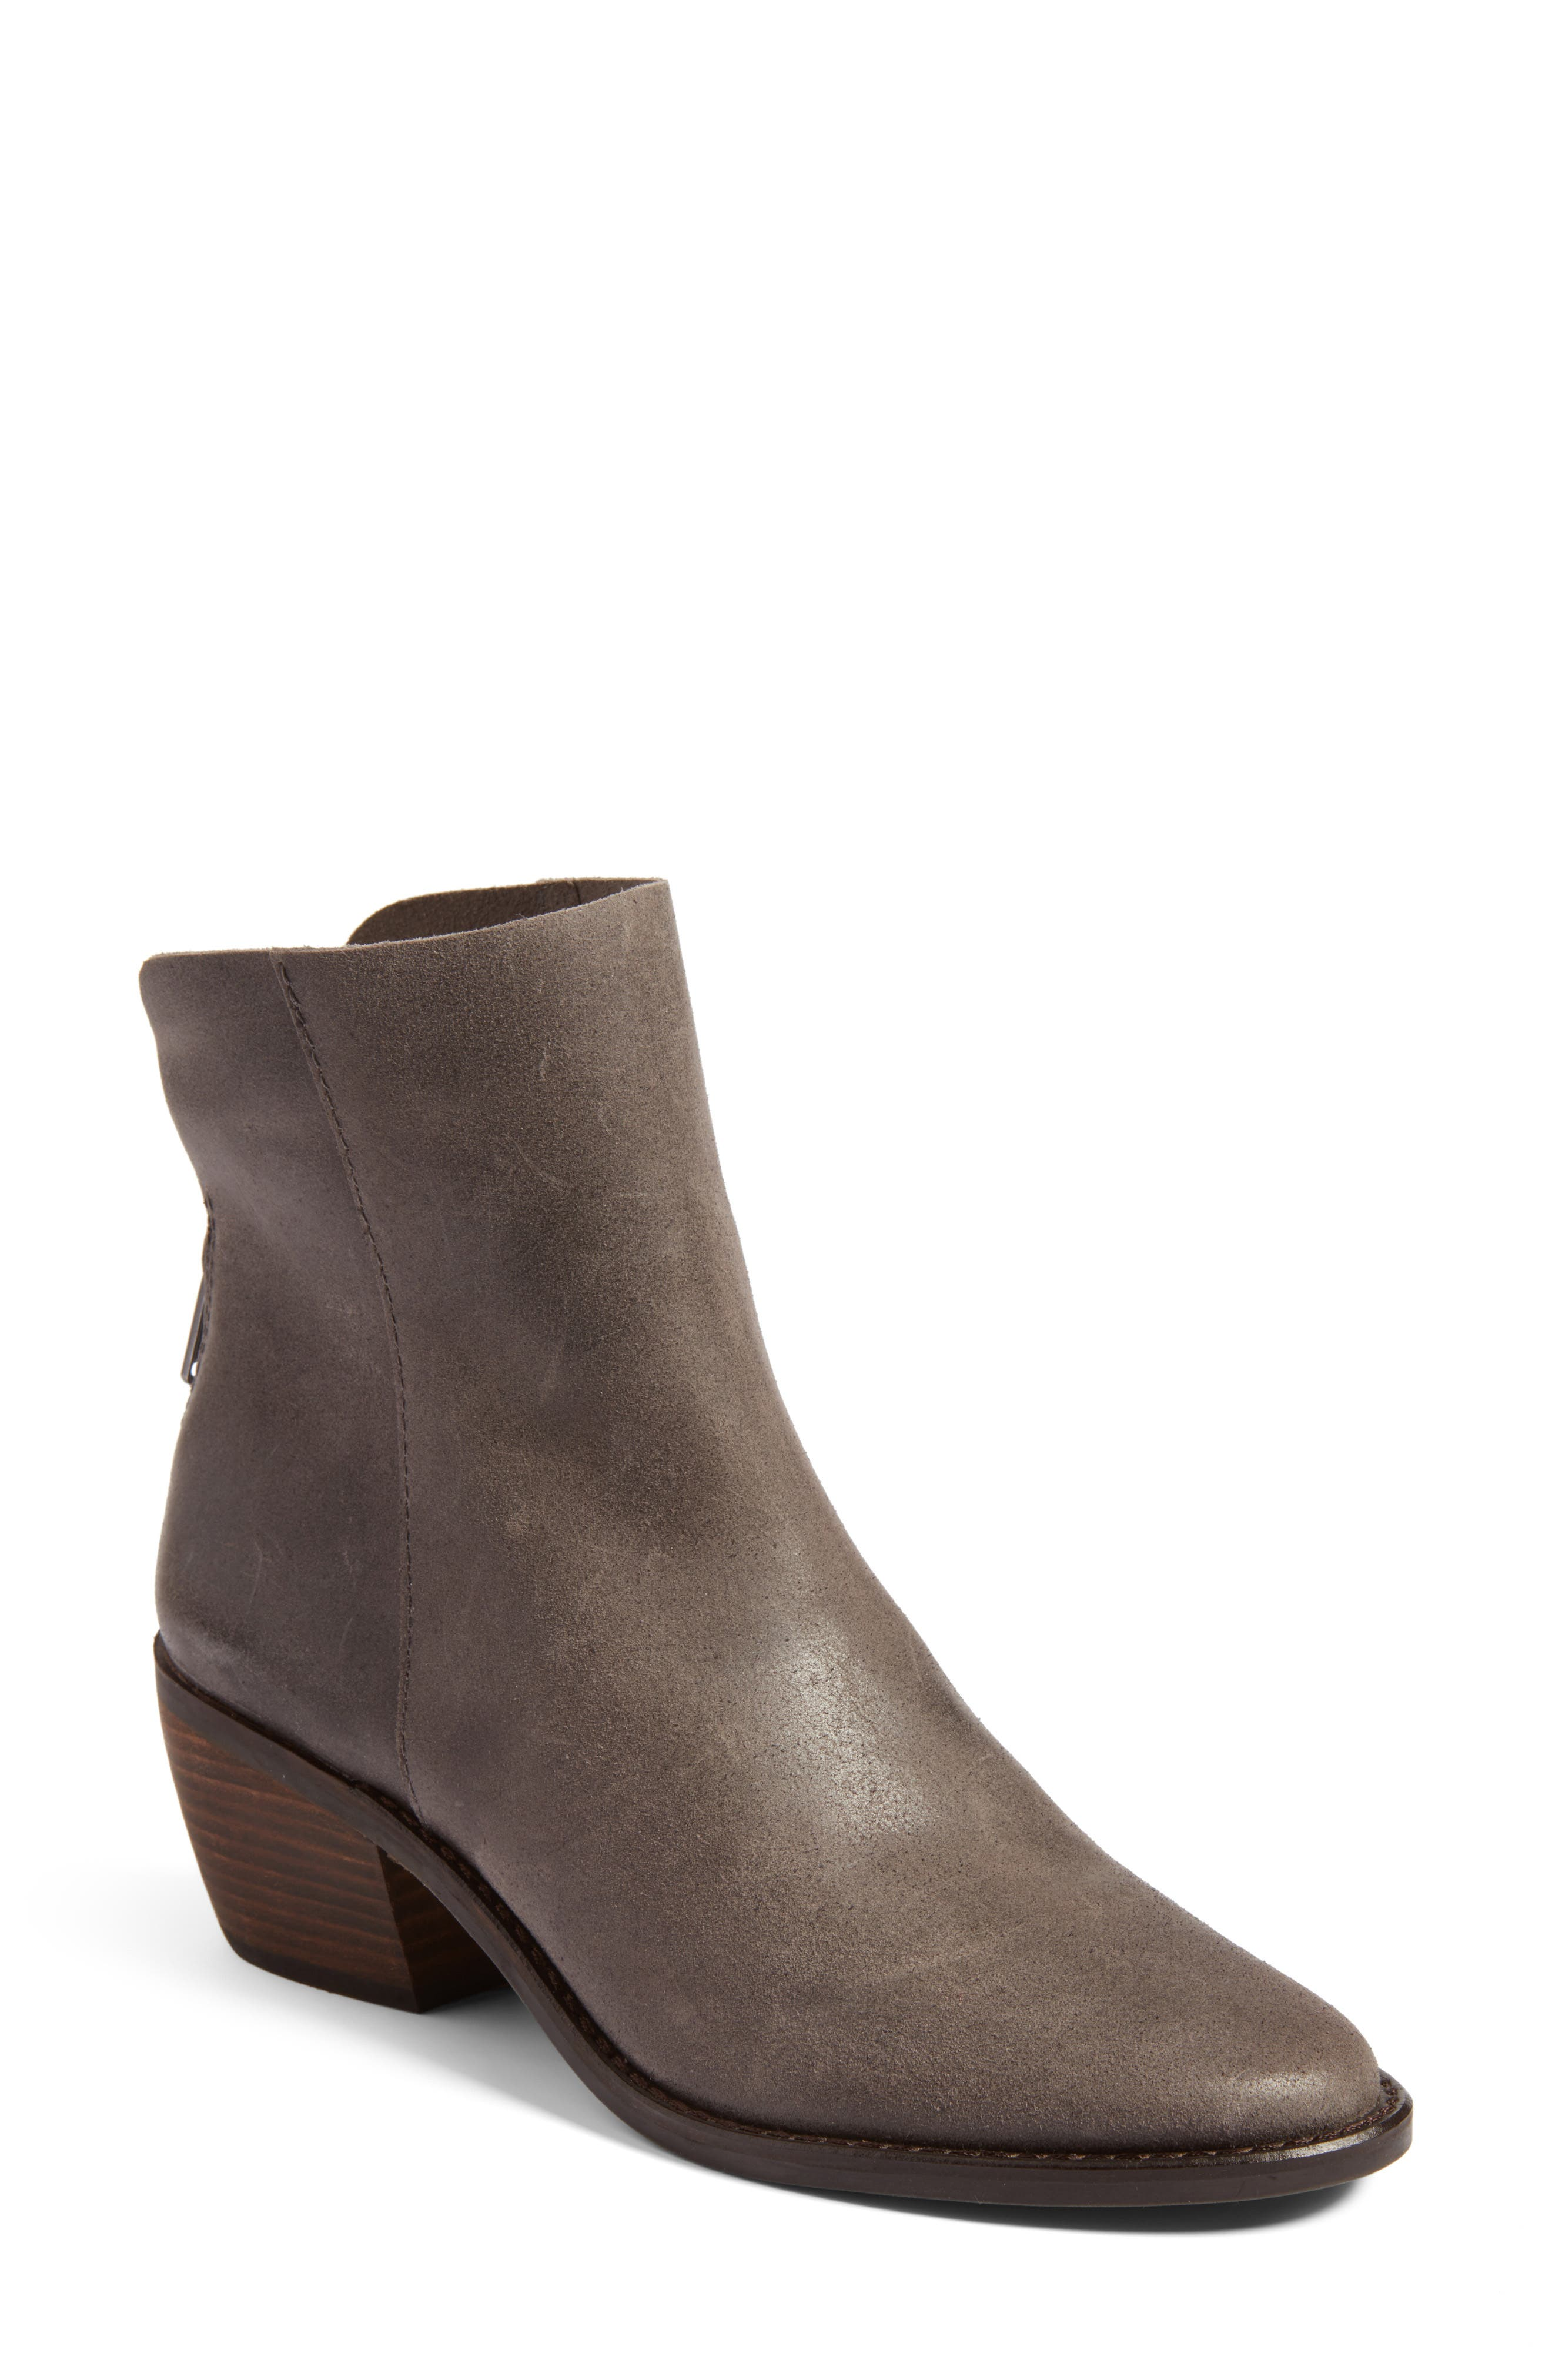 Main Image - Lucky Brand Kaiya Pointy Toe Bootie (Women)